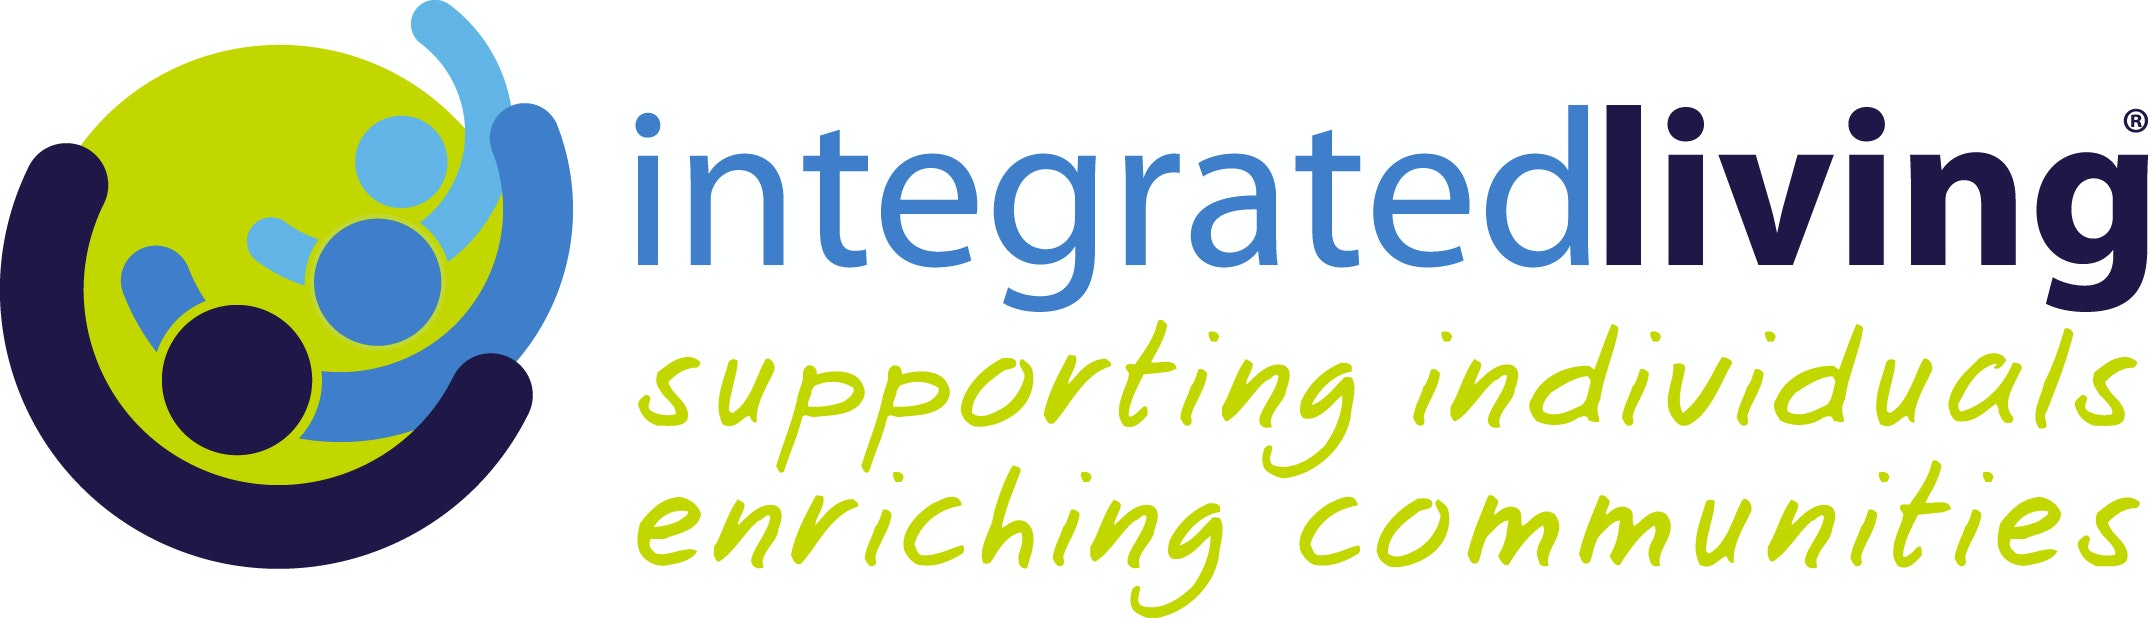 integratedliving Australia New South Wales logo